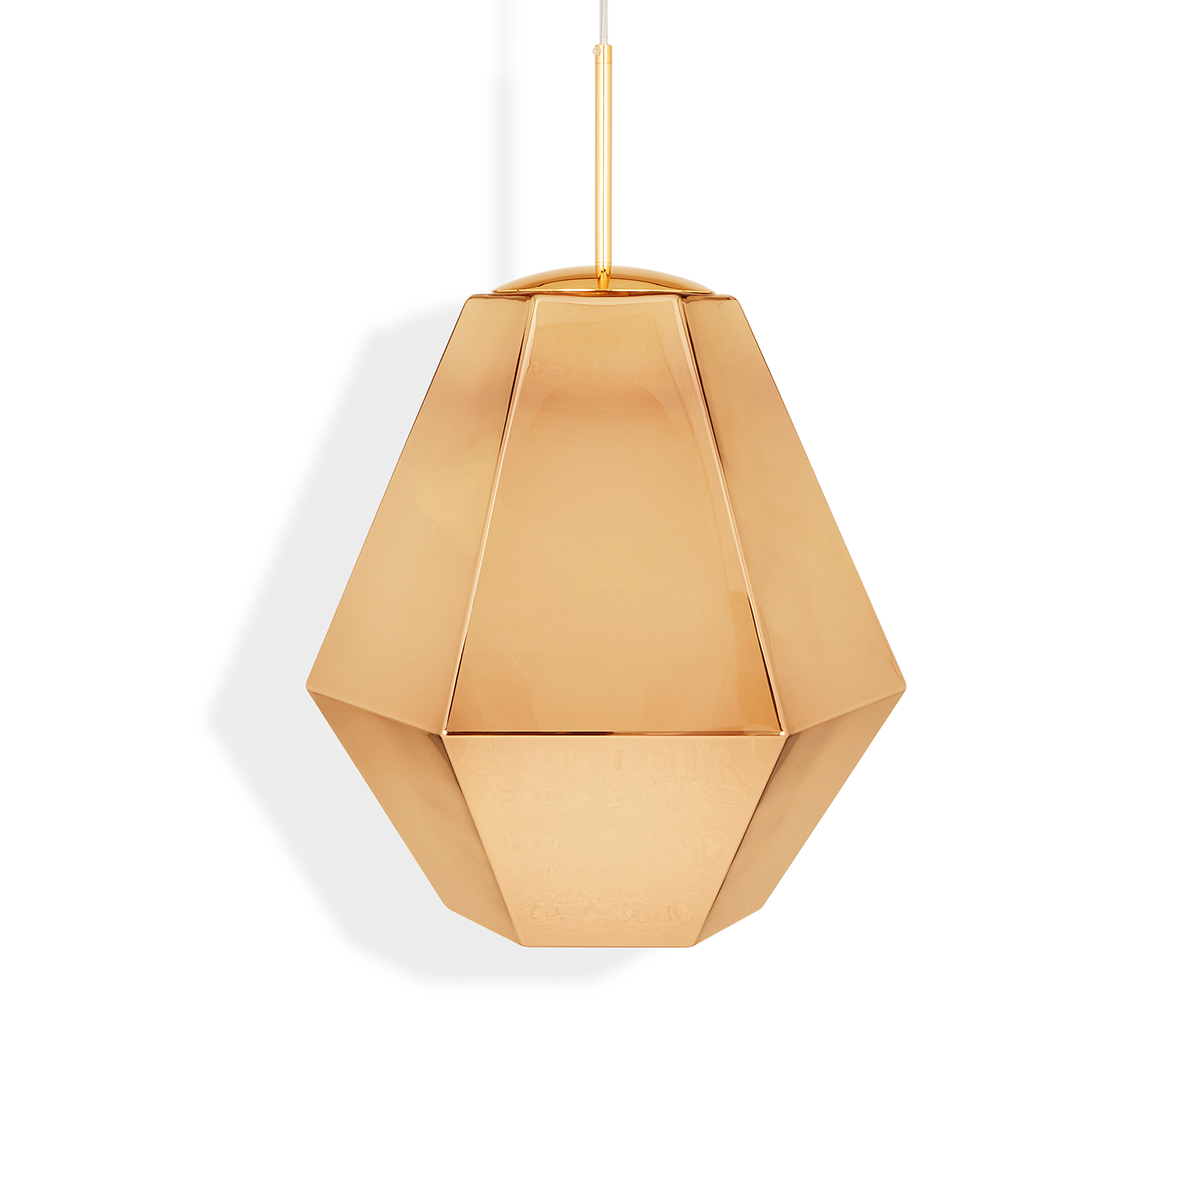 Tom Dixon Cut Tall Suspension Lamp in Gold 50cm 晶鑽切割系列 吊燈 - 高挑款 金色款